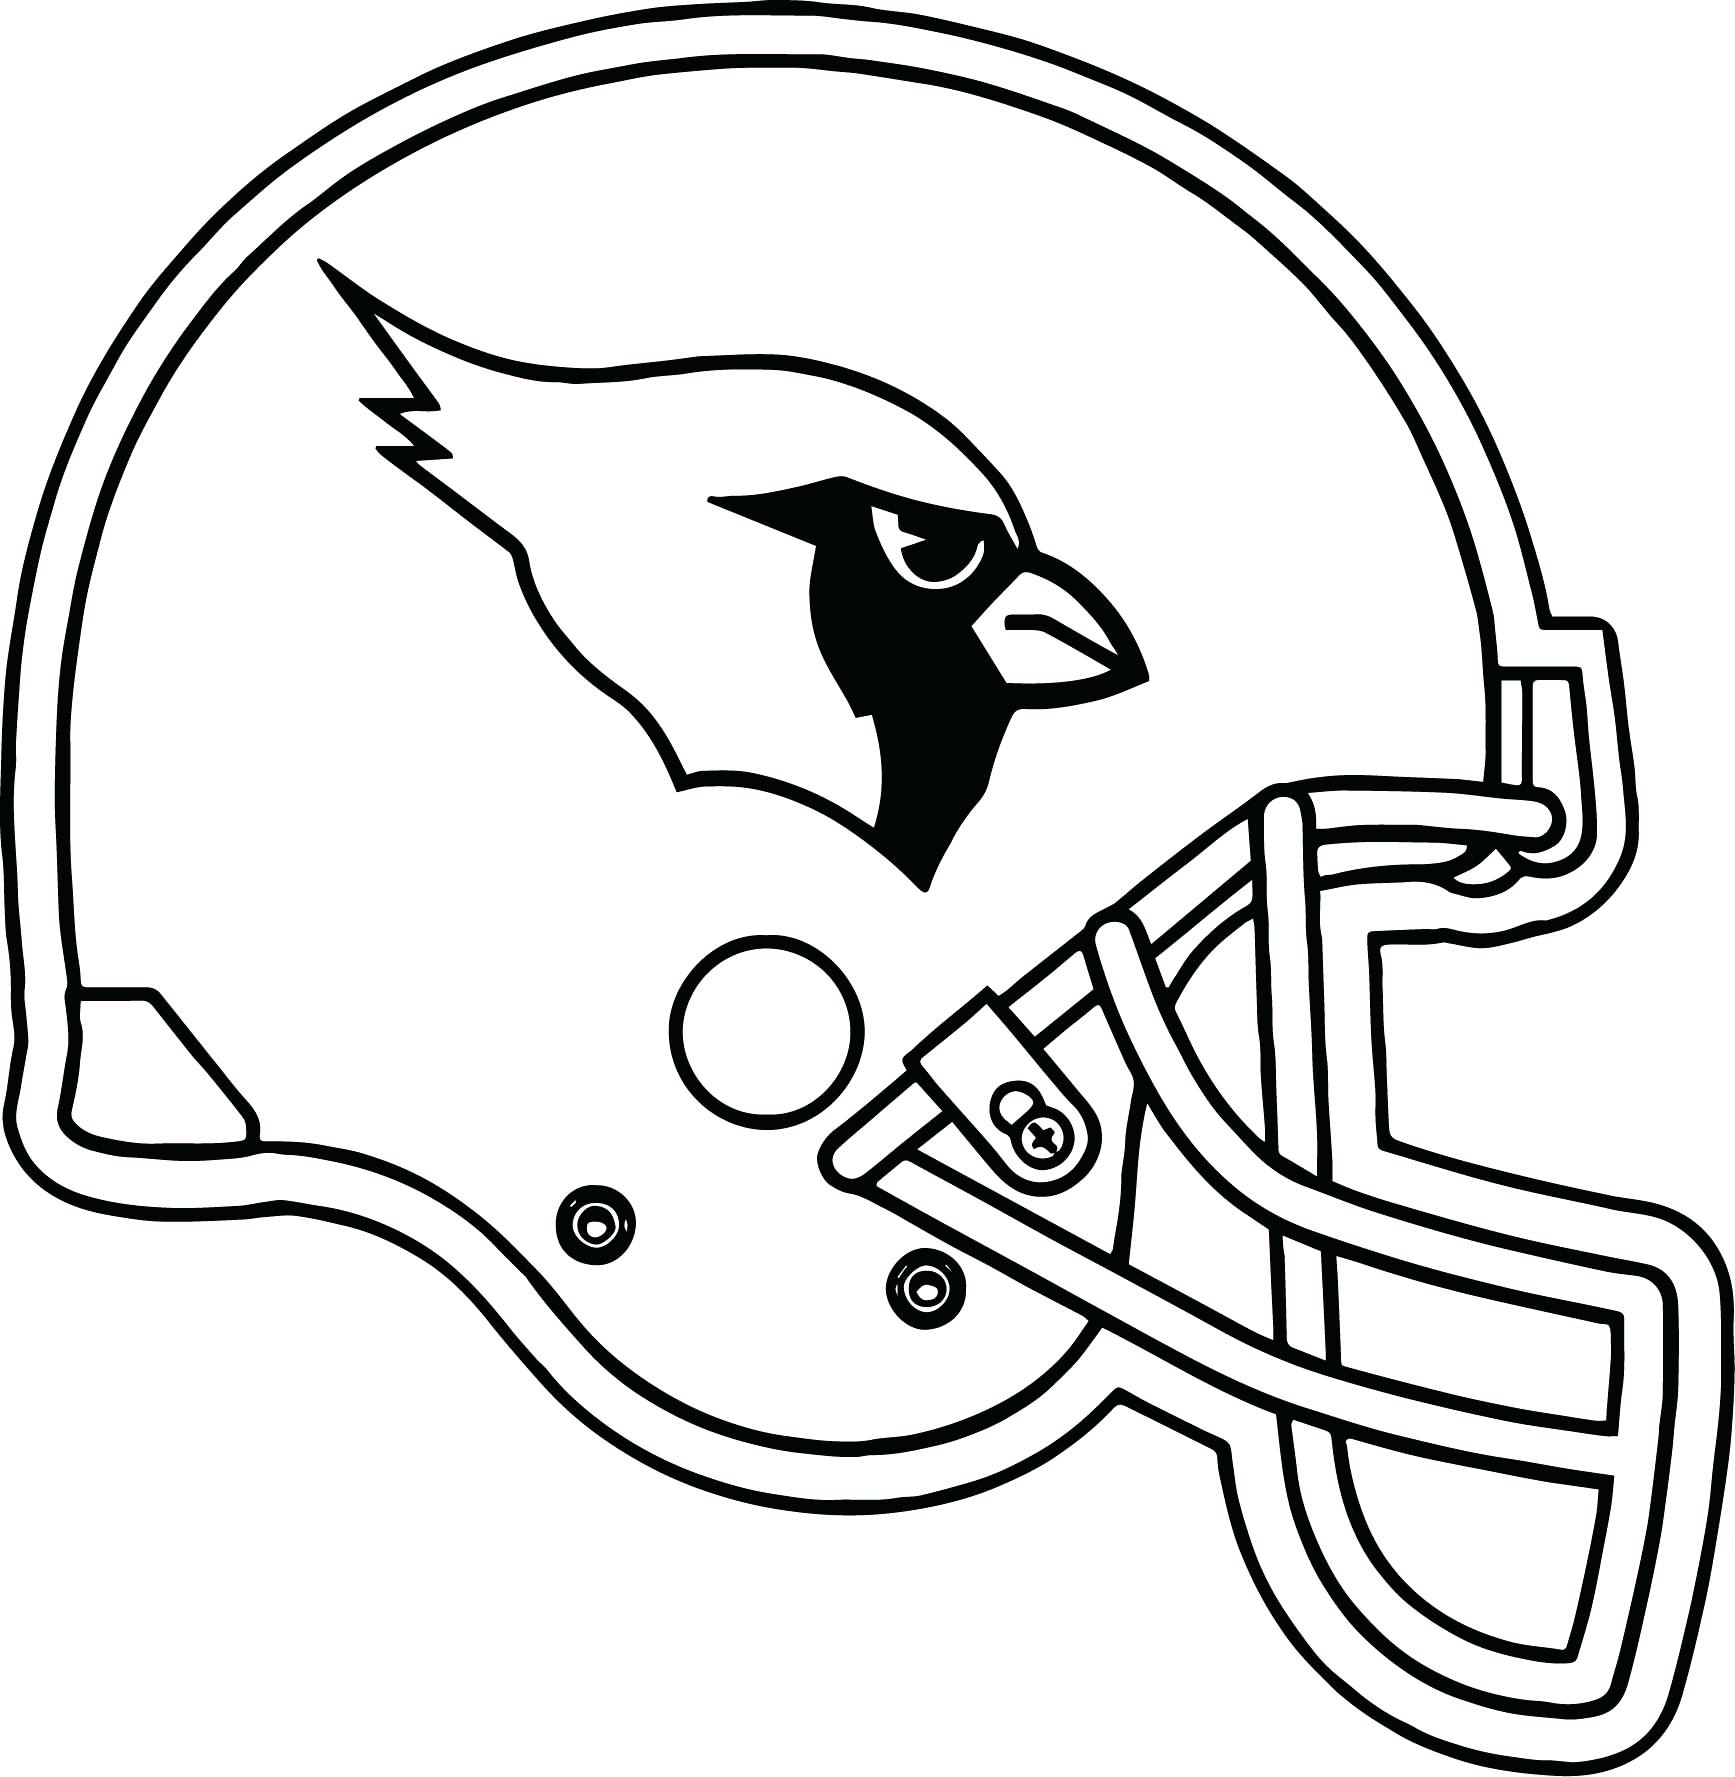 Denver Broncos Logo Coloring Pages At Getcolorings